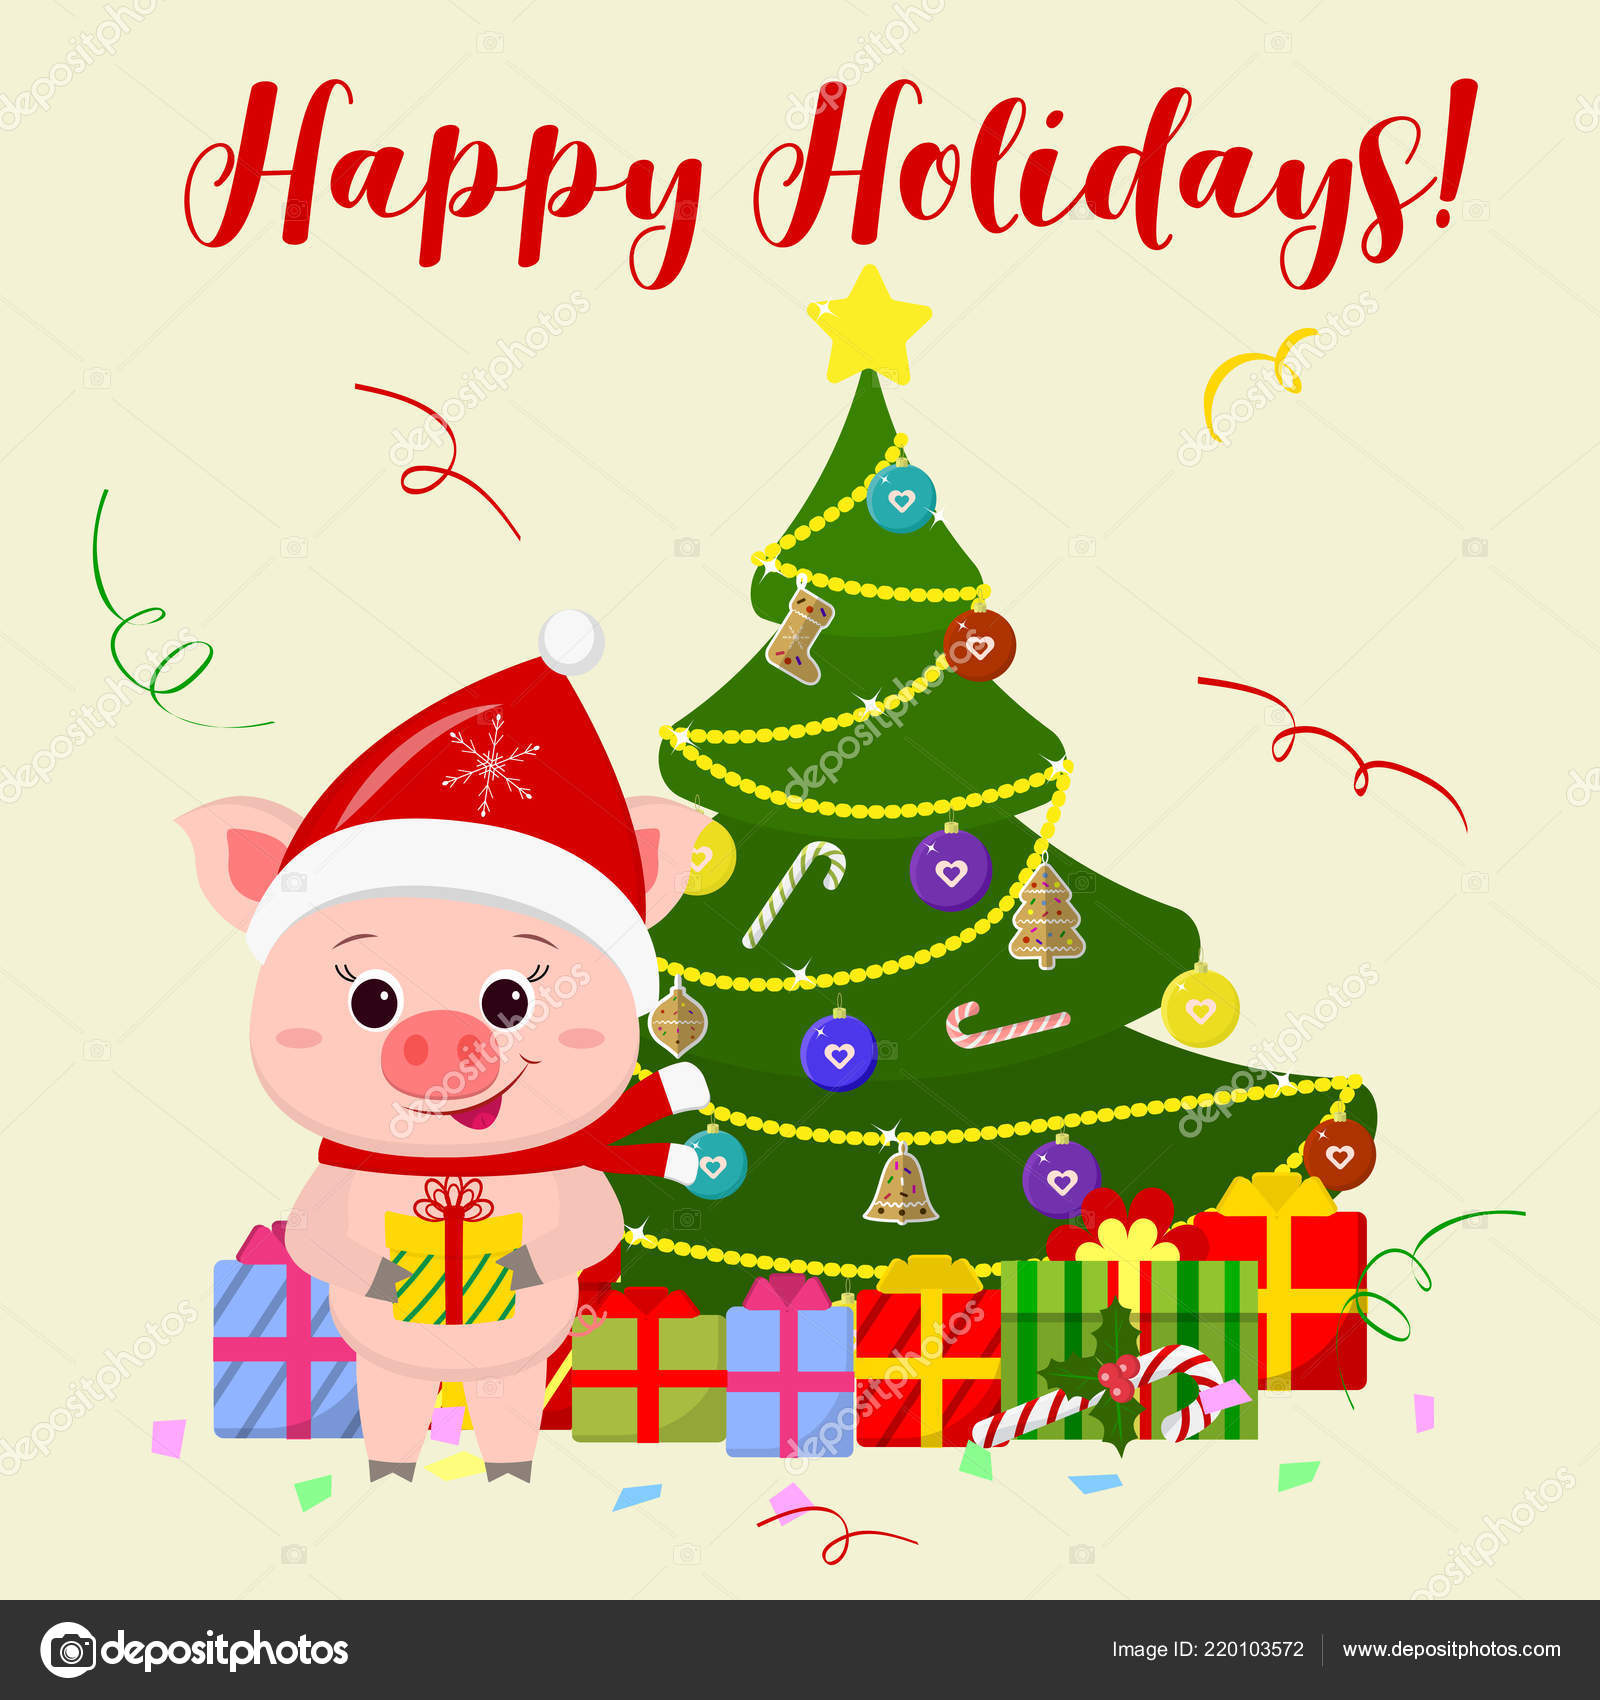 happy new year and merry christmas greeting card a cute pig wearing a santa claus hat and scarf is standing next to a tree and holding a gift